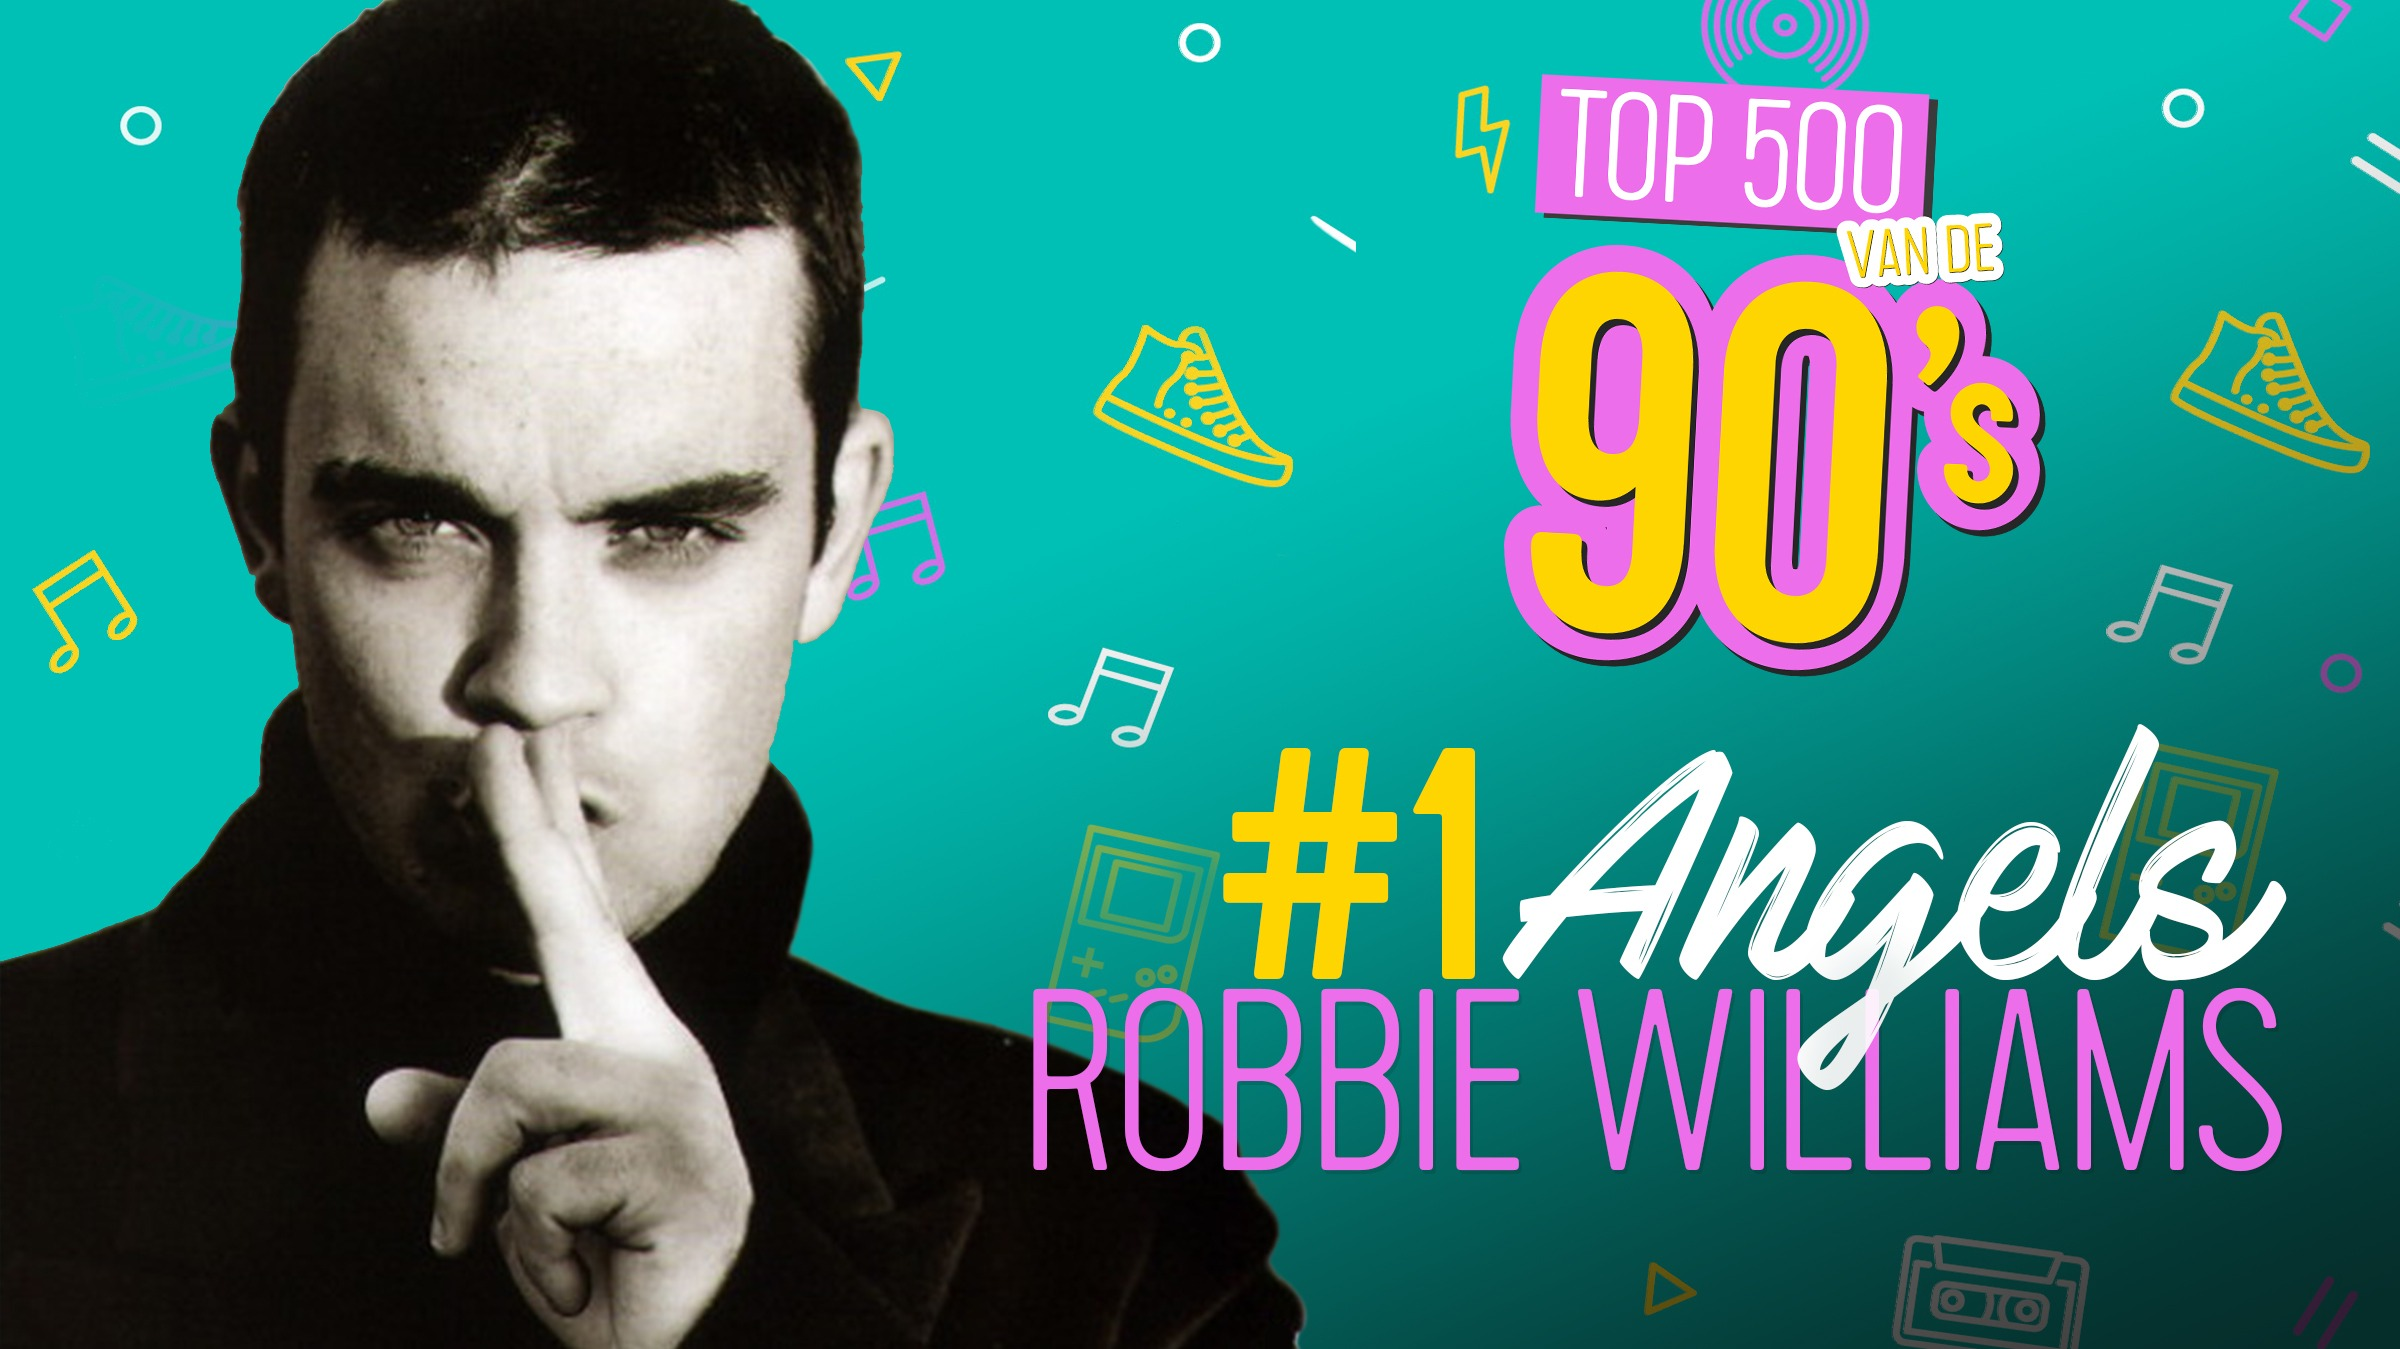 20210   top 500 vd 90 s   robbie williams   angels  mijlpaal